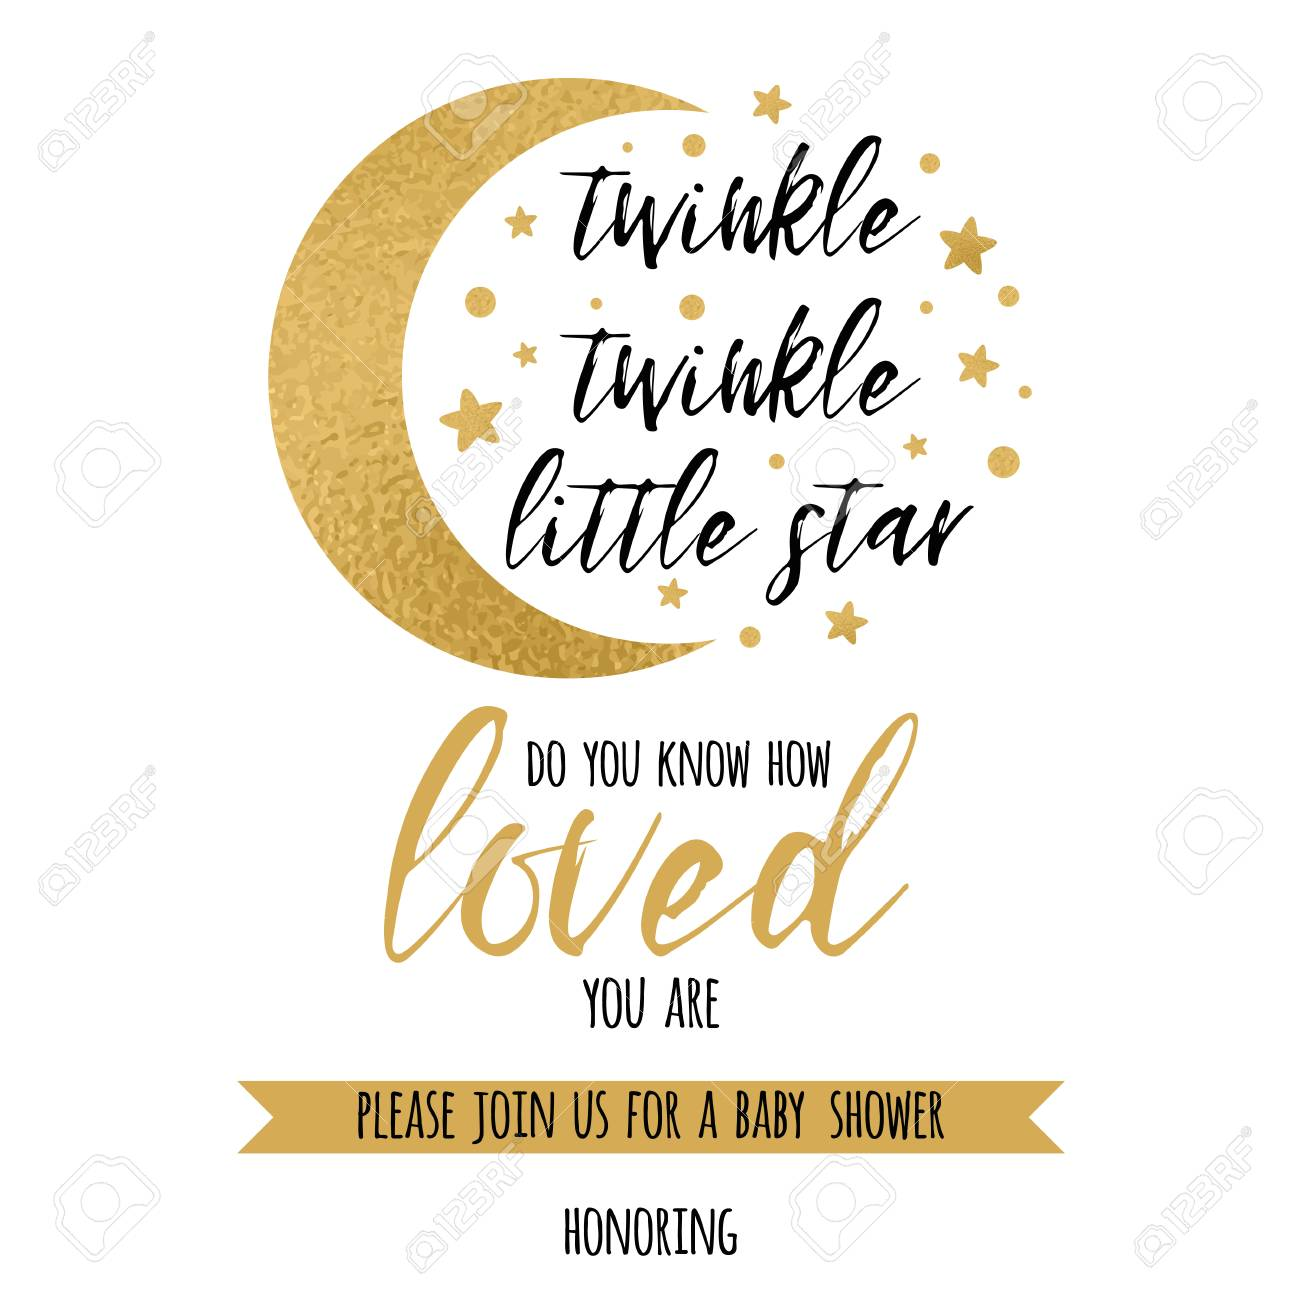 graphic regarding Free Printable Twinkle Twinkle Little Star Baby Shower Invitations identified as Twinkle twinkle tiny star phrases relished with gold star and moon..